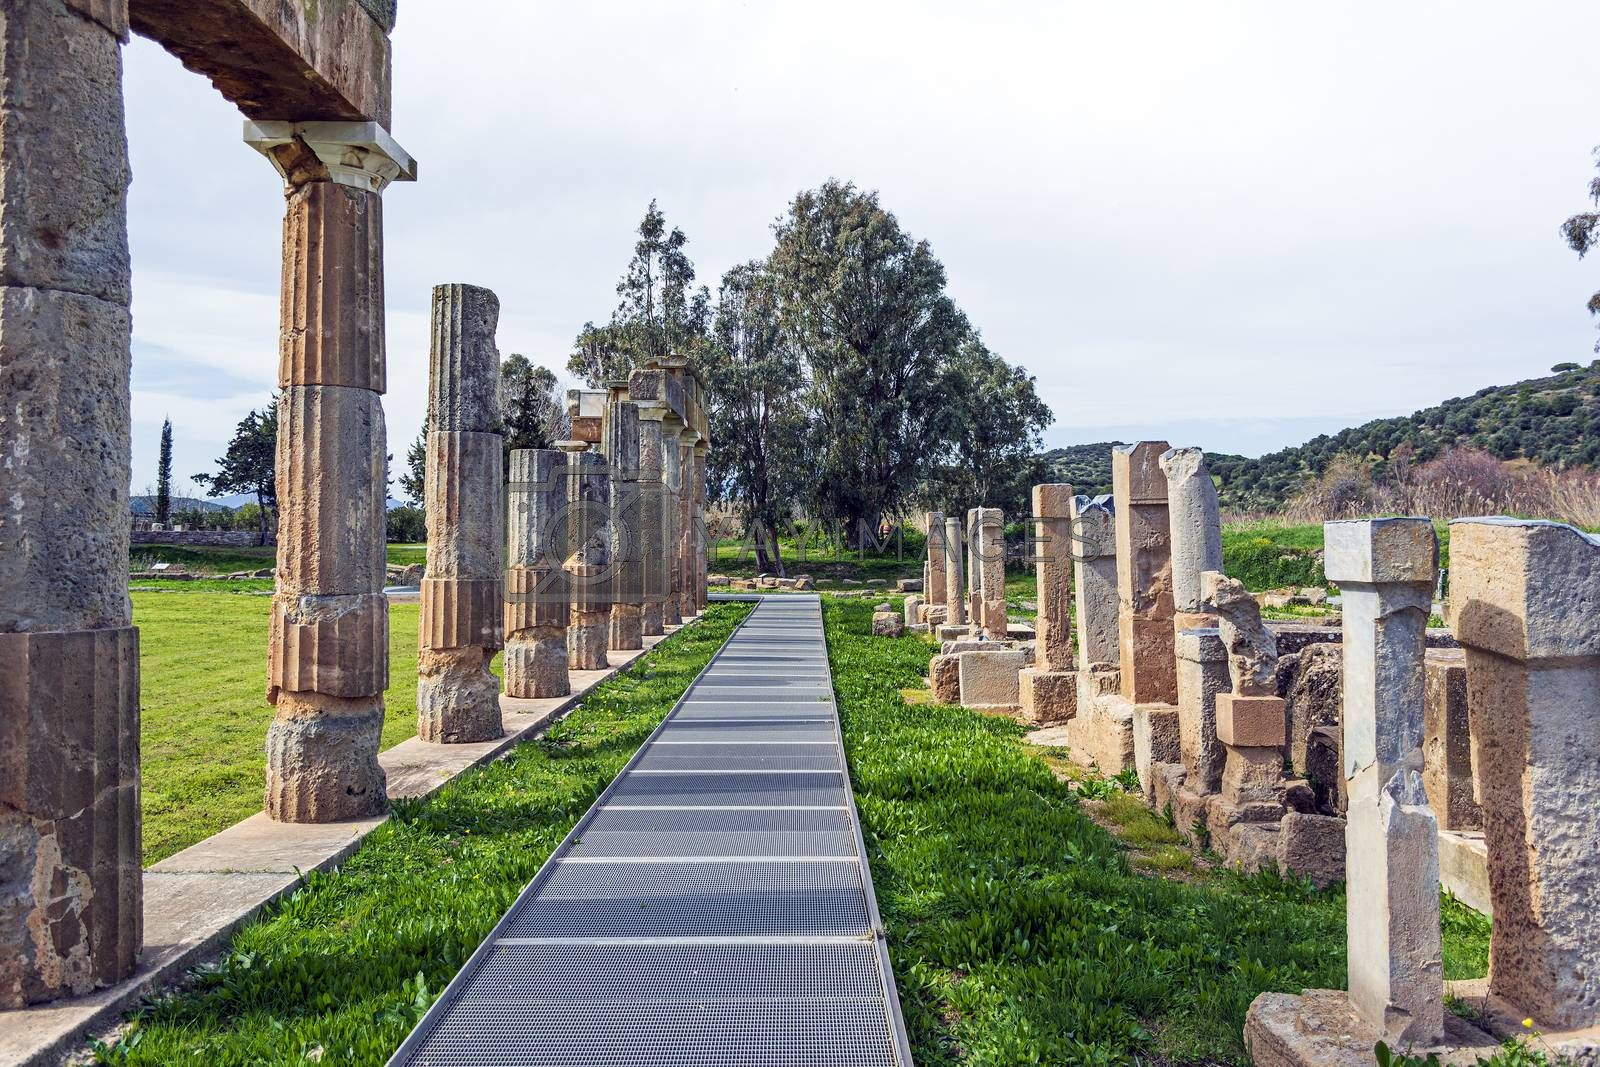 Temple of Artemis in archaeological site of Brauron, Attica, Greece. Afternoon time.